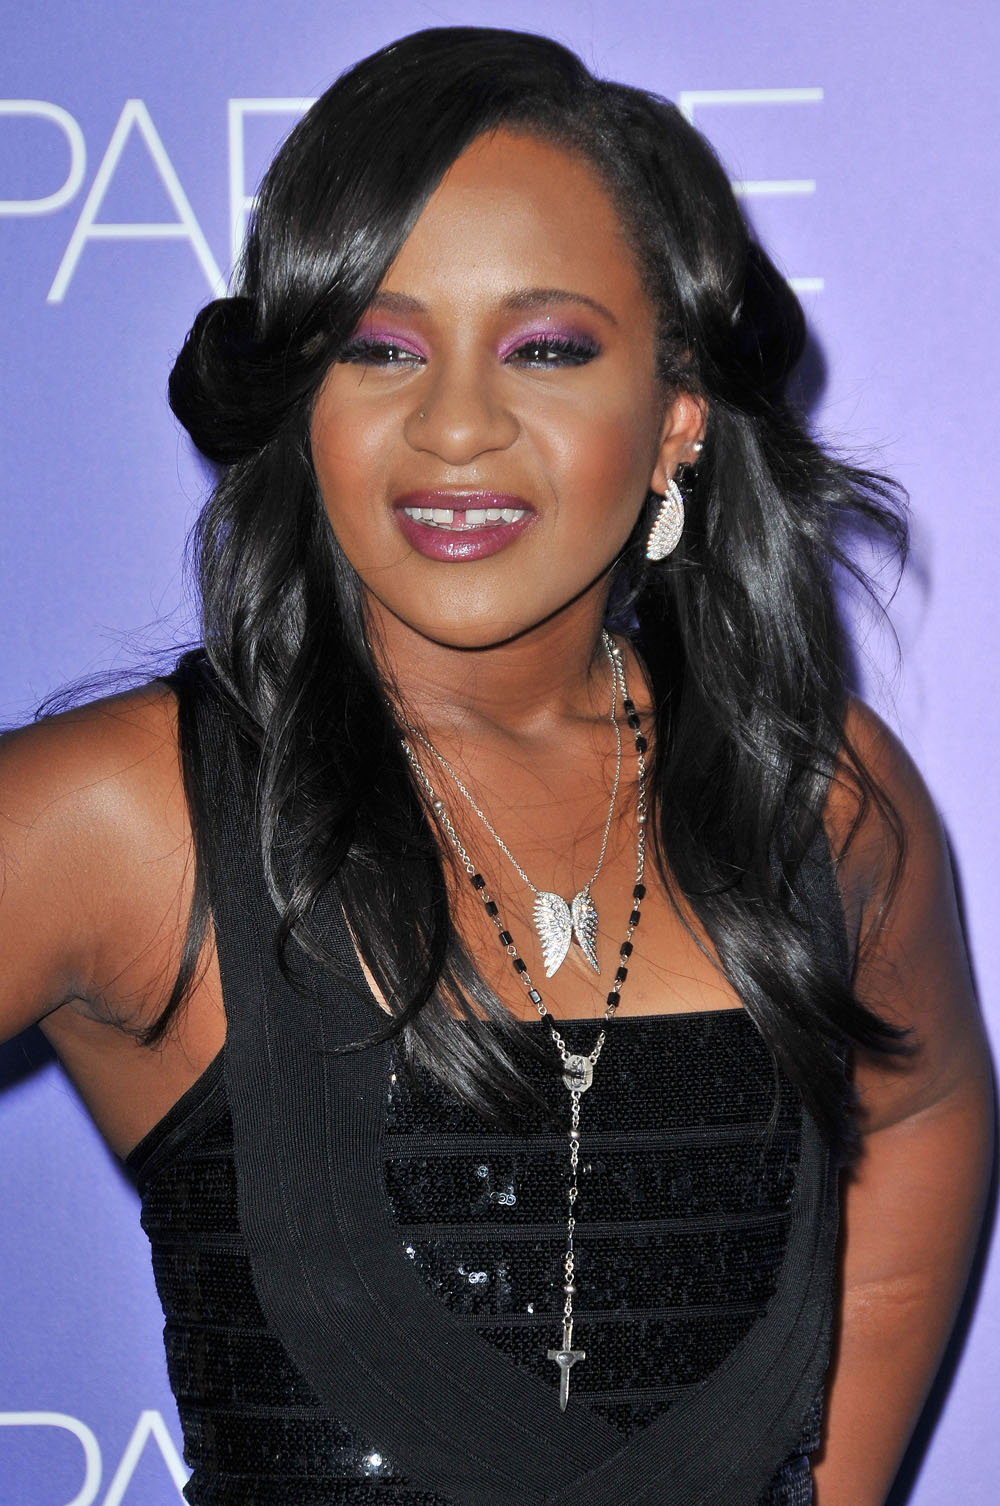 Bobbi Kristina Brown at the World Premiere of SPARKLE, August 16, 2012 at the Grauman's Chinese Theatre, Hollywood, California. Photo Credit Sue Schneider_MGP Agency